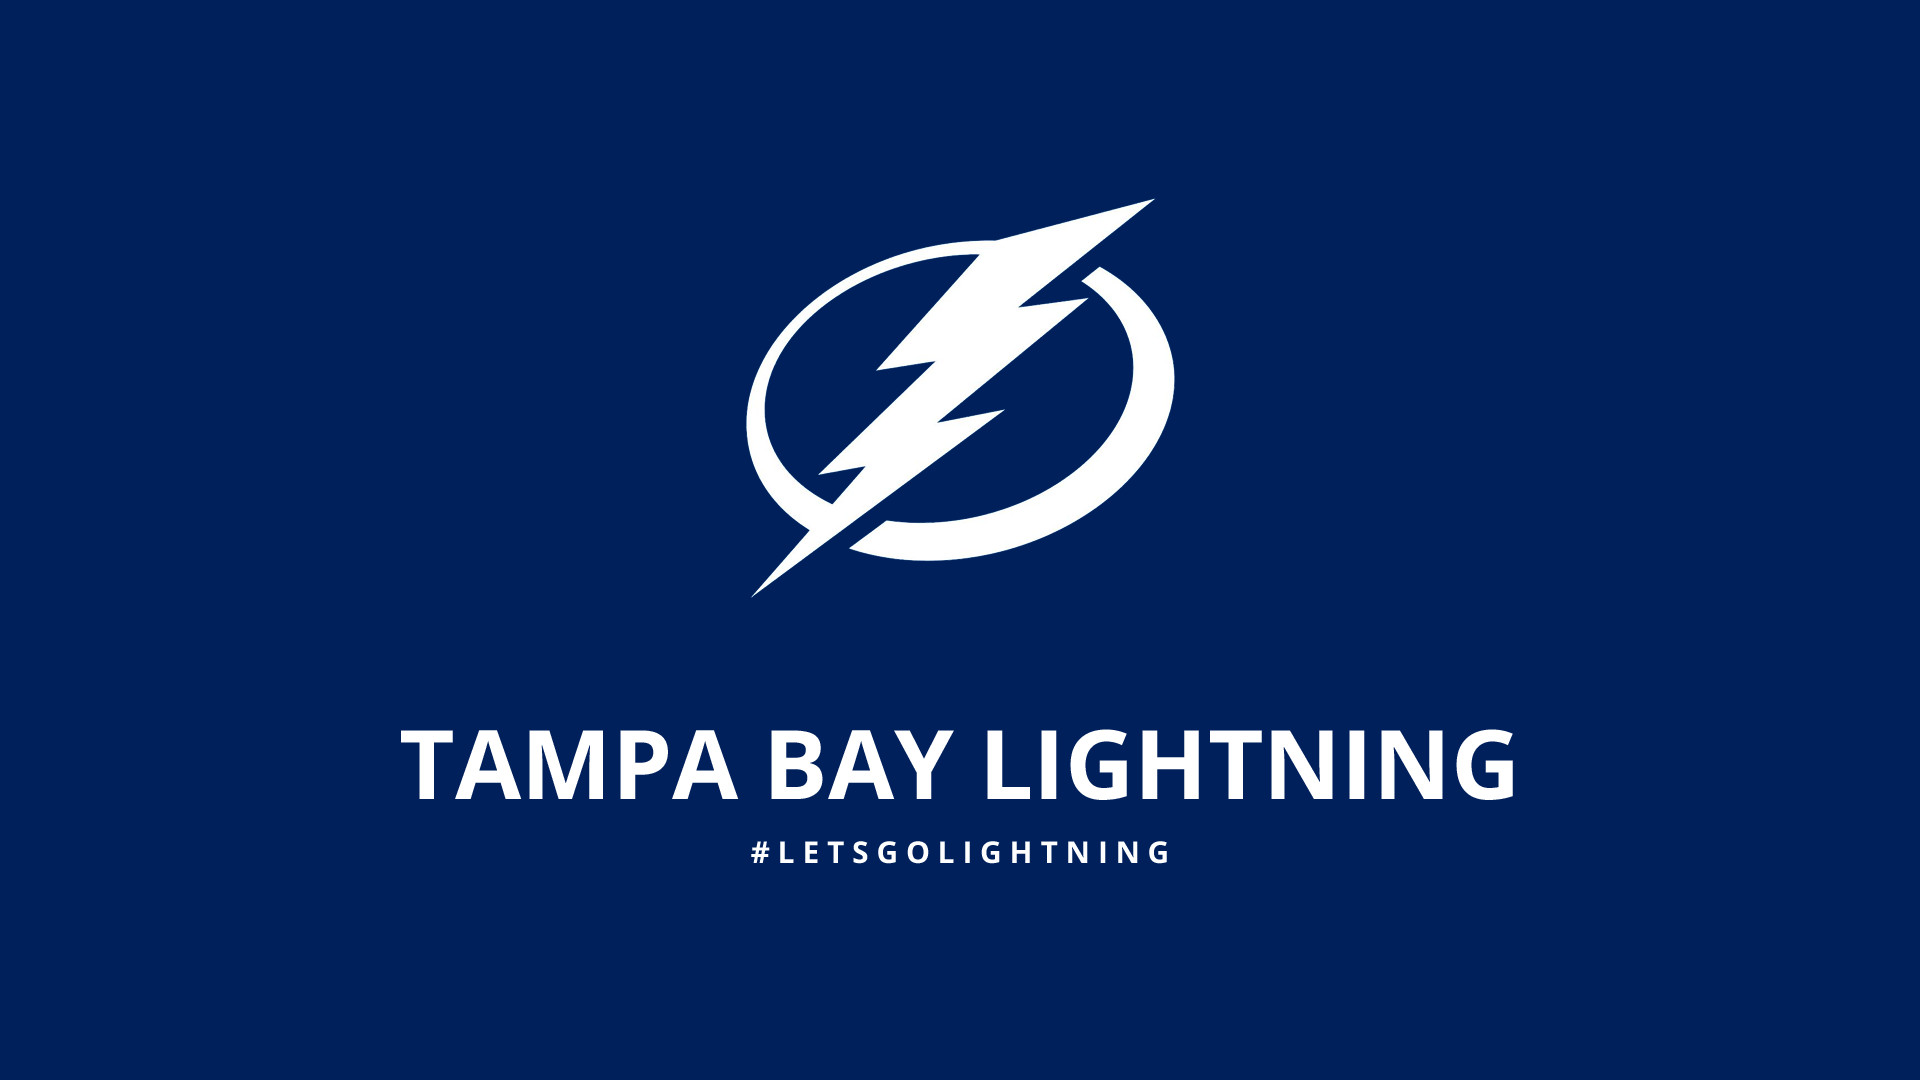 1920x1080 Lightning Wallpapers Wallpaper | HD Wallpapers | Pinterest | Lightning and Tampa  bay lightning